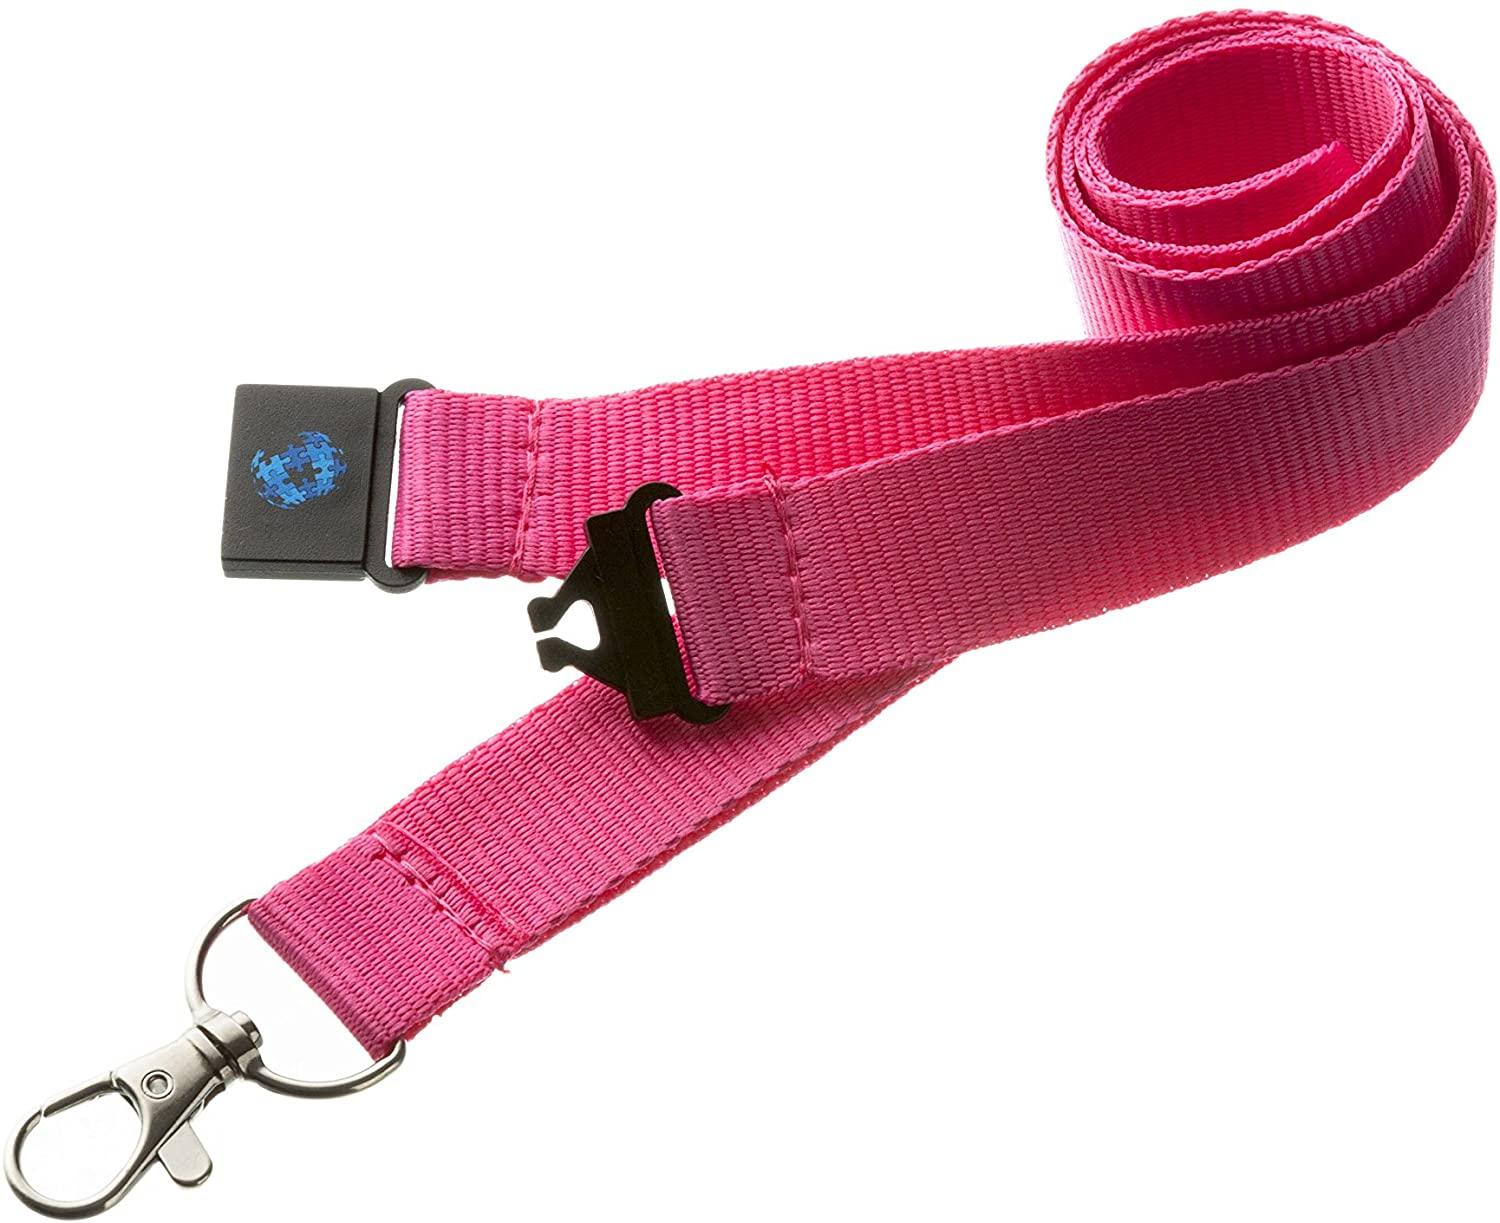 20mm Quality Neck Lanyard/Badge Holder/Skipass Holder/Whistle Holder with Safety Breakaway (Pink) by PAC SUPPLIES USA